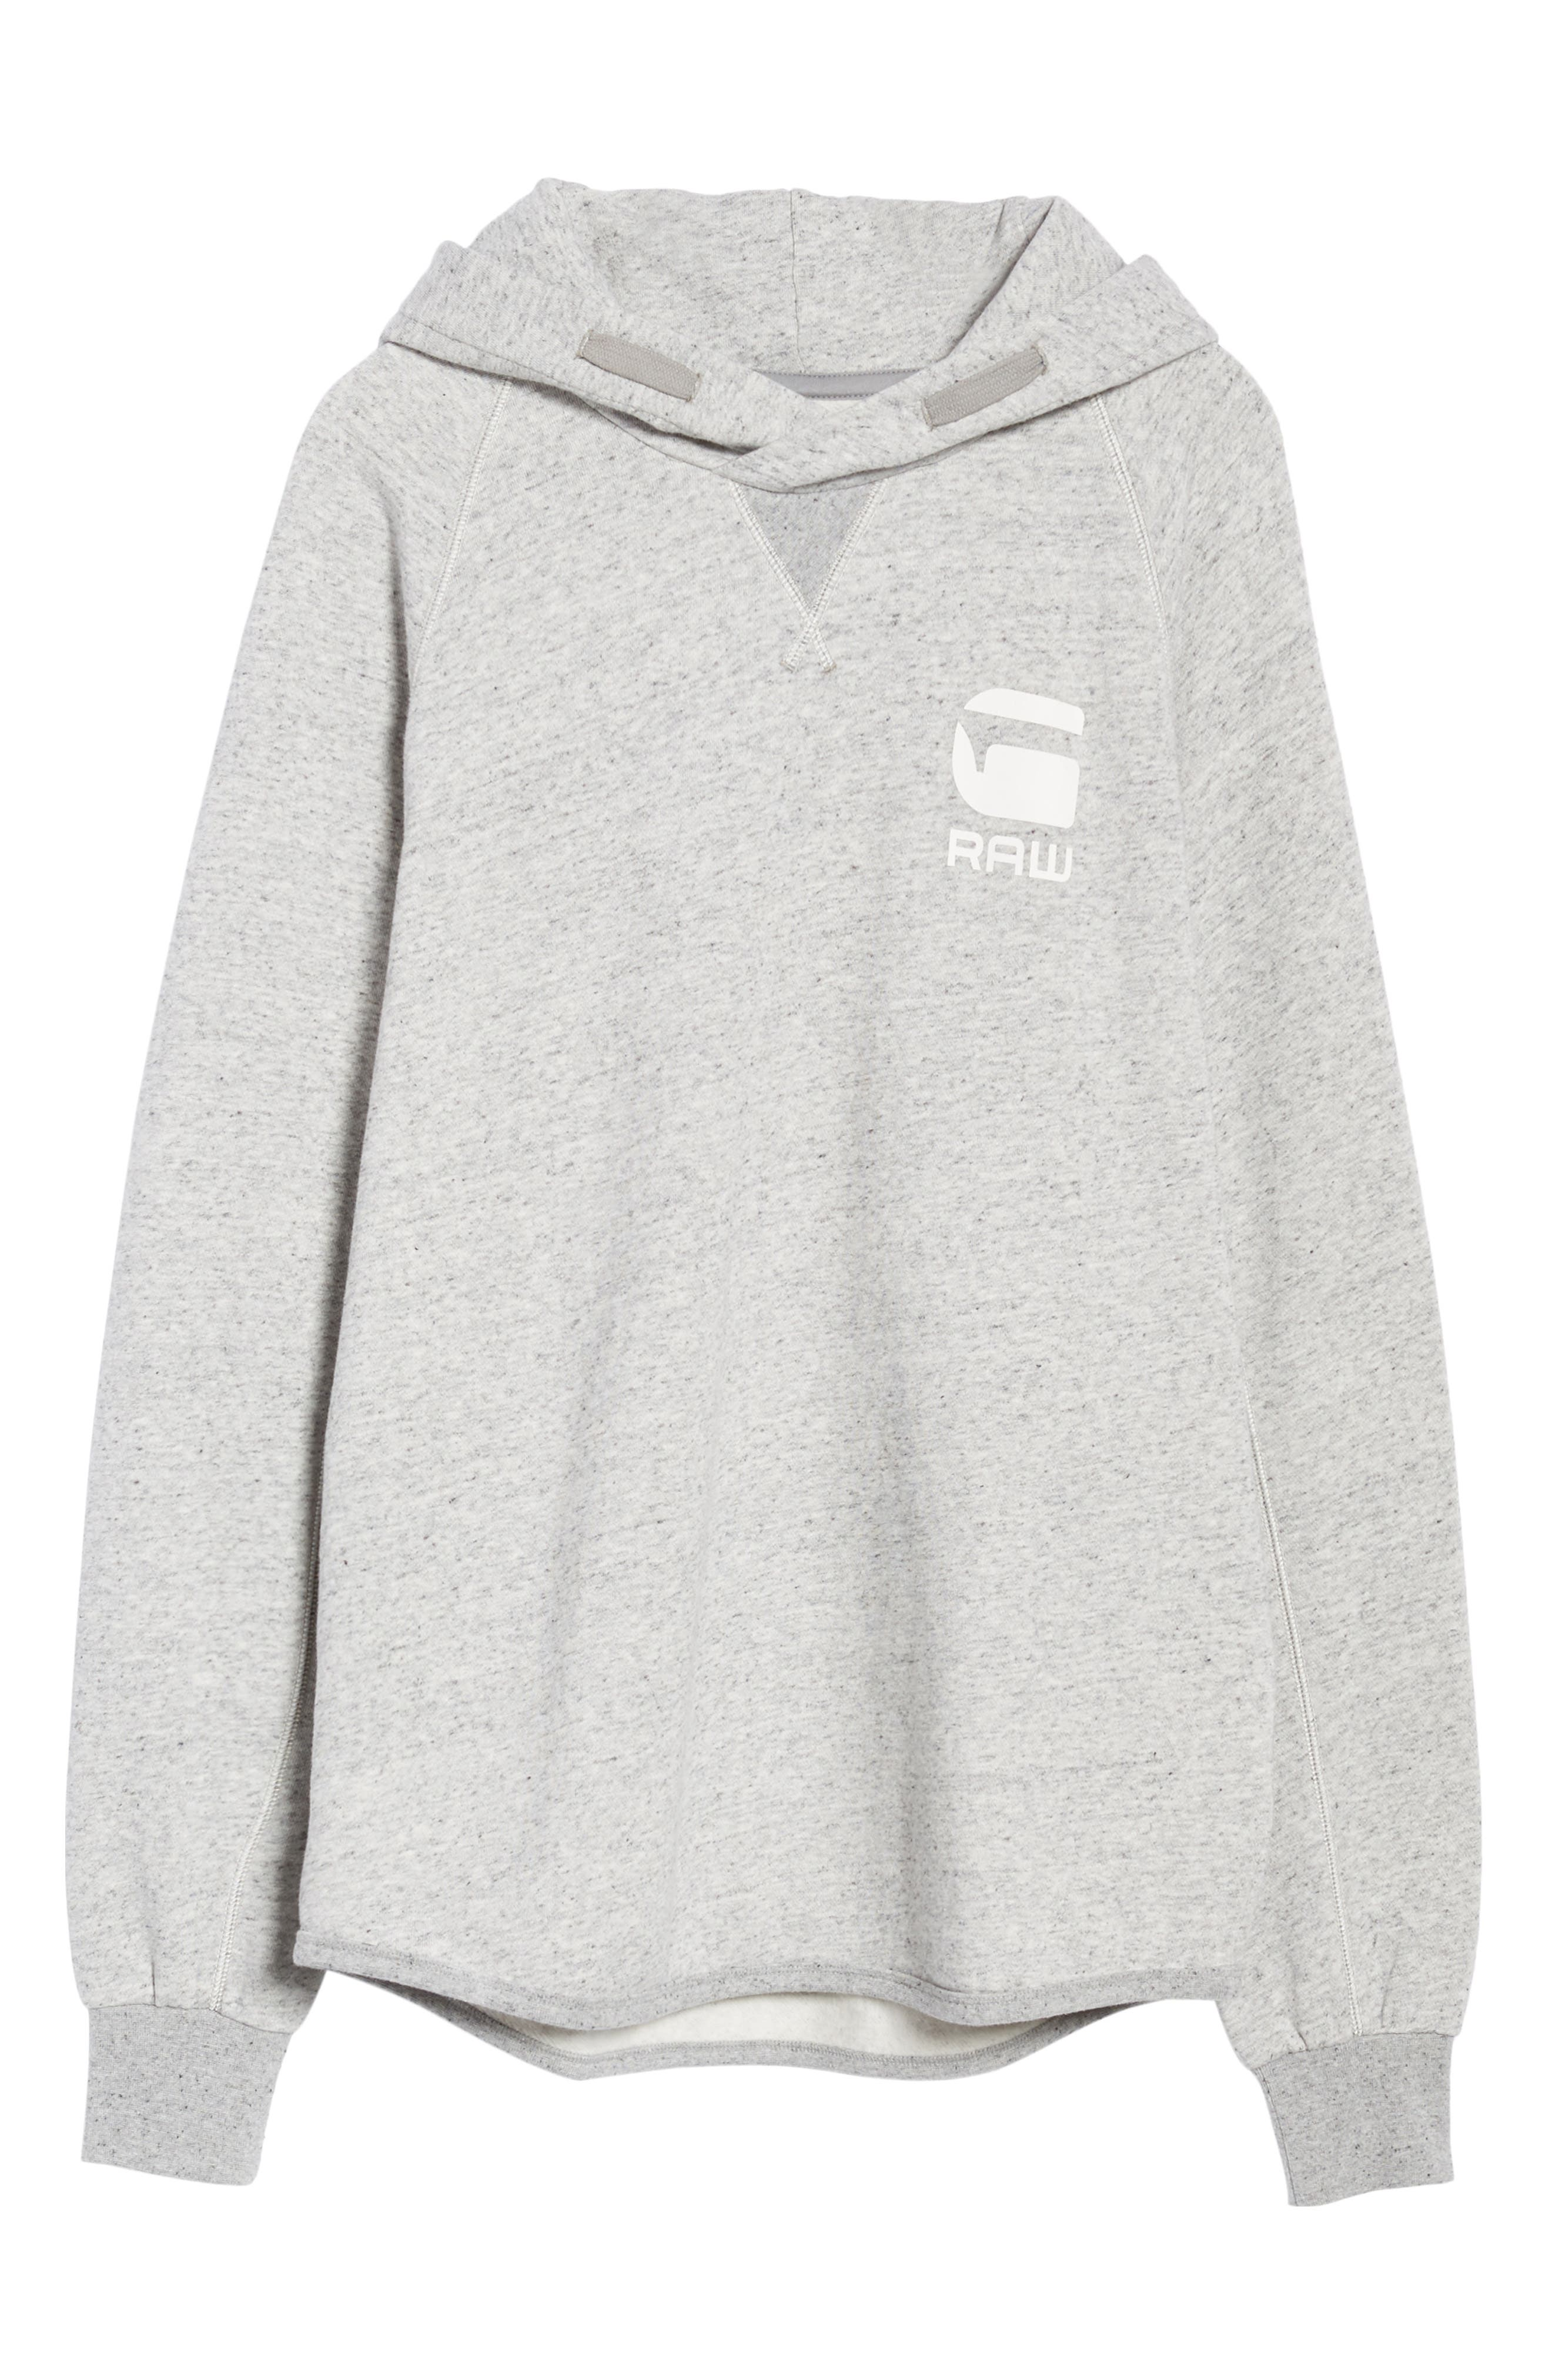 Callow Pullover Hoodie,                             Alternate thumbnail 6, color,                             020